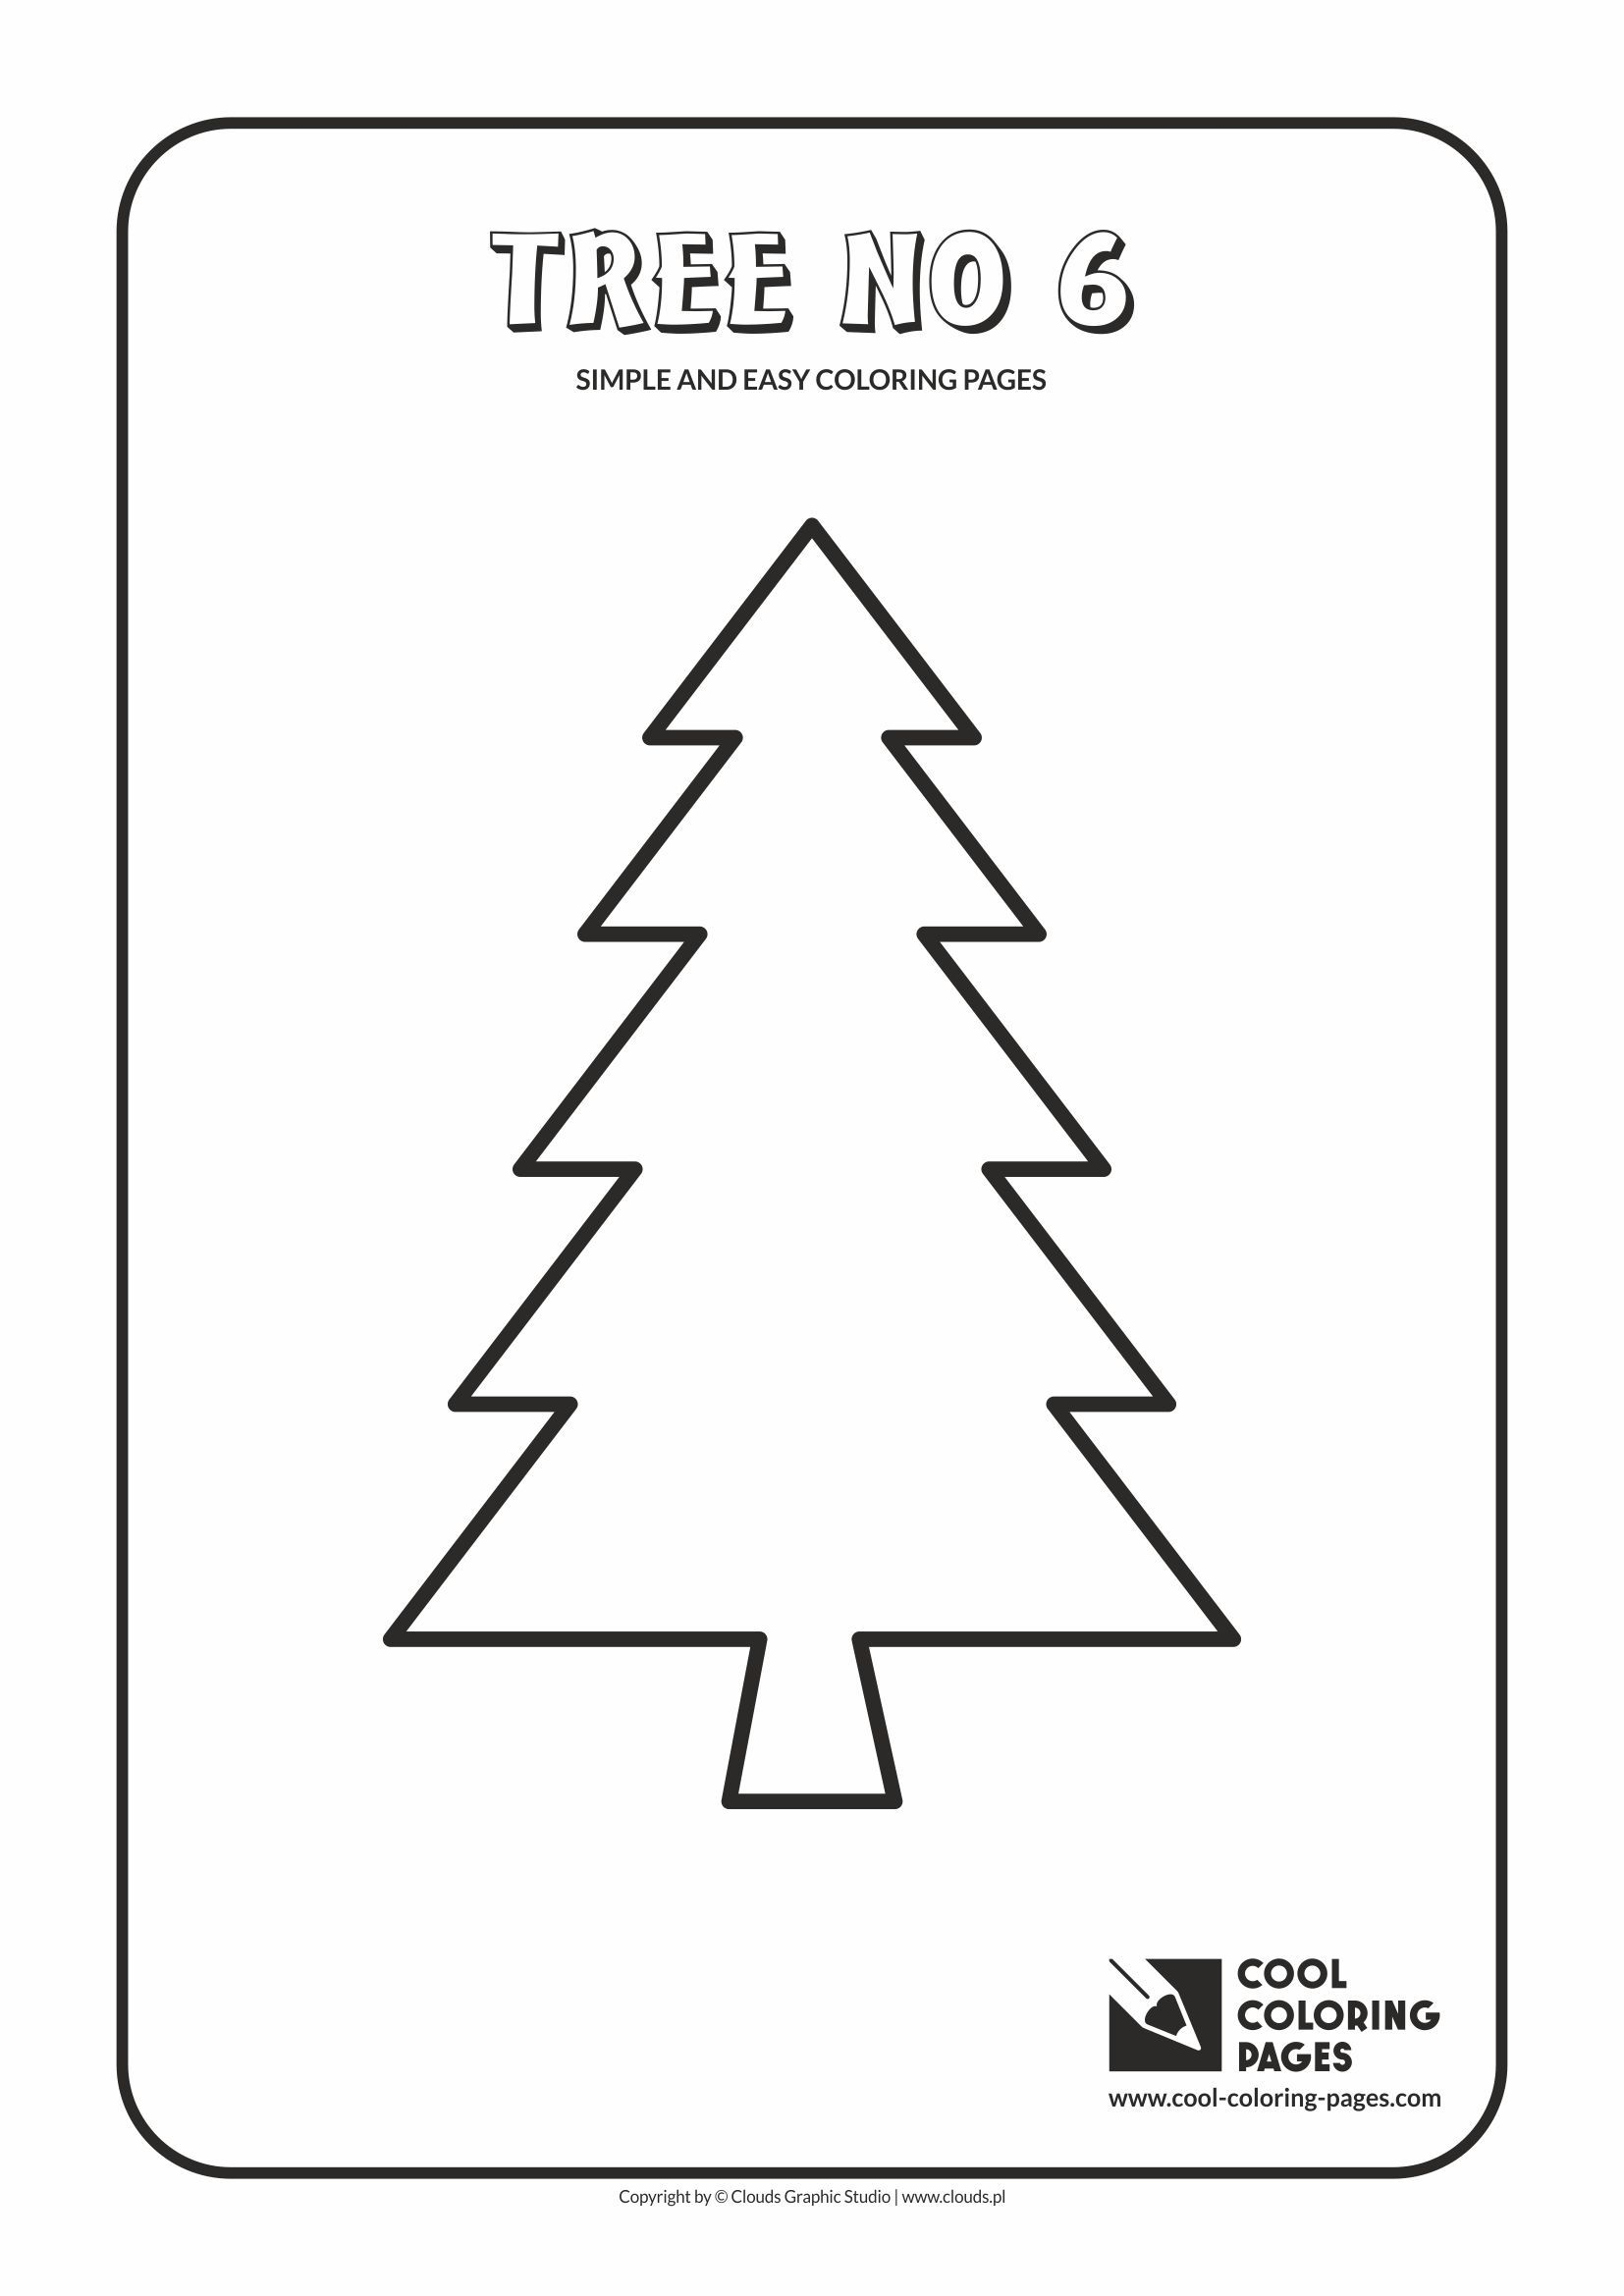 simple and easy coloring pages for toddlers tree no 6 simple and